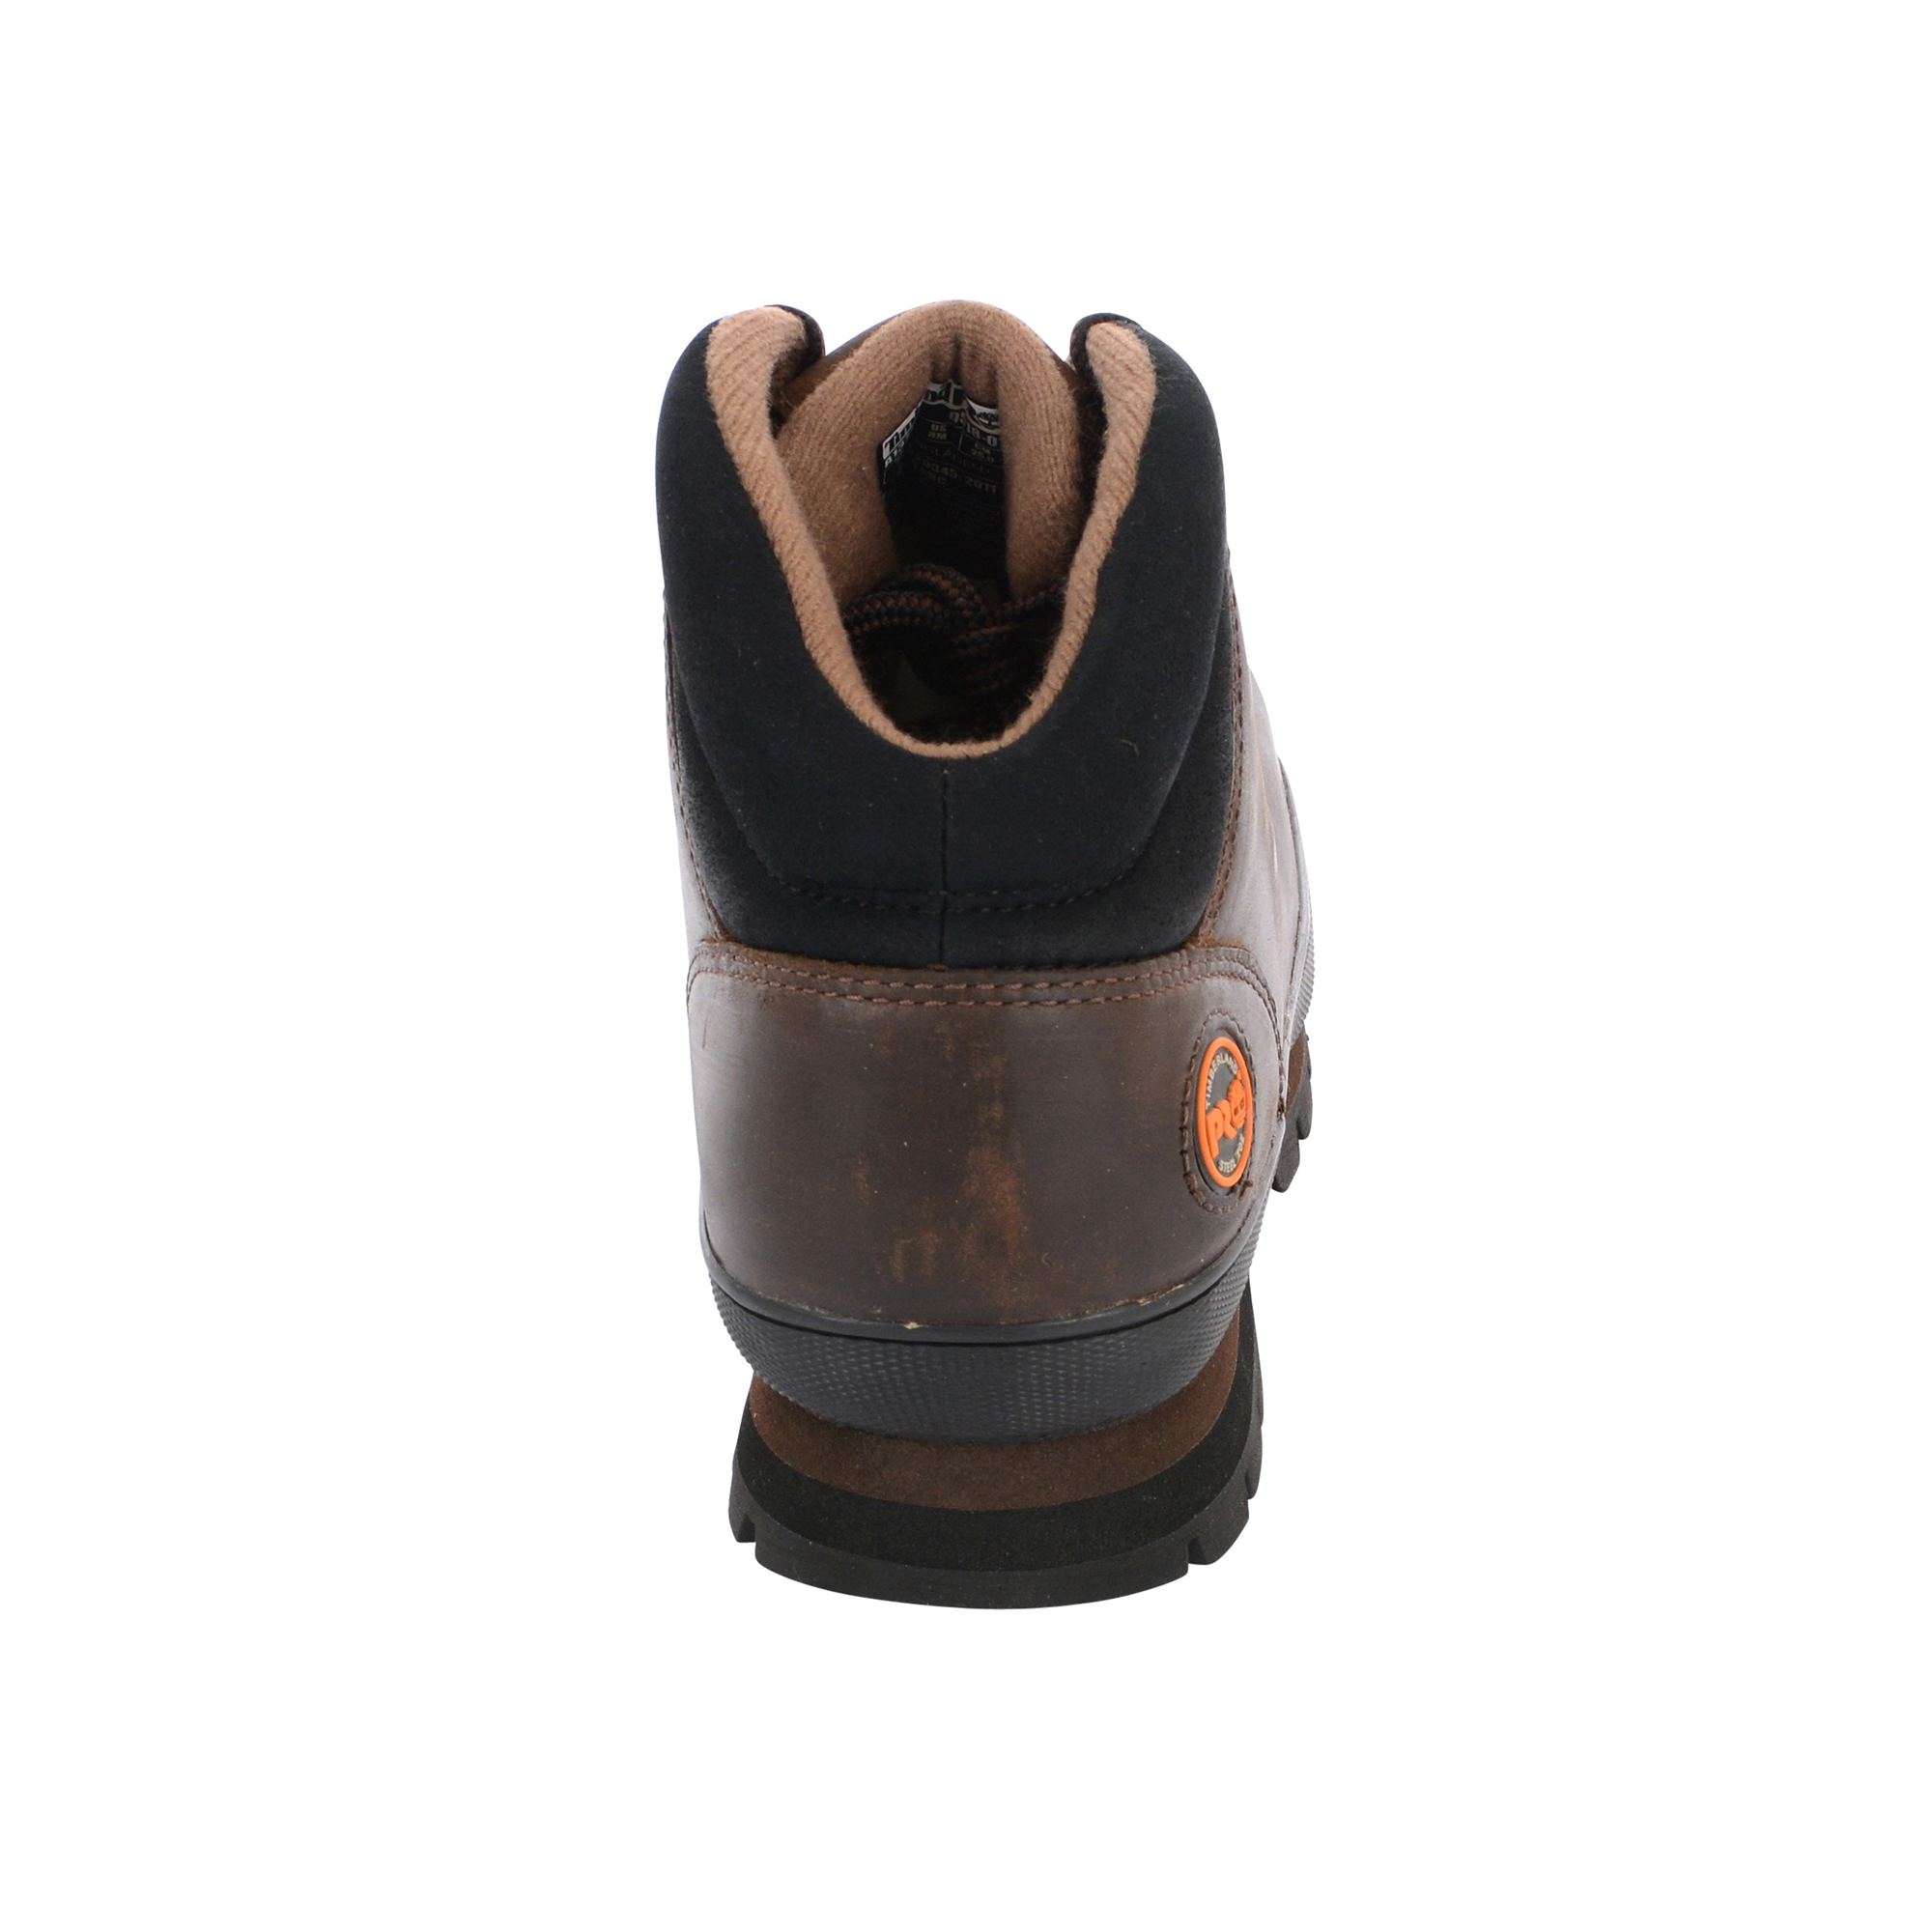 Where To Buy Timberland Safety Shoes In London